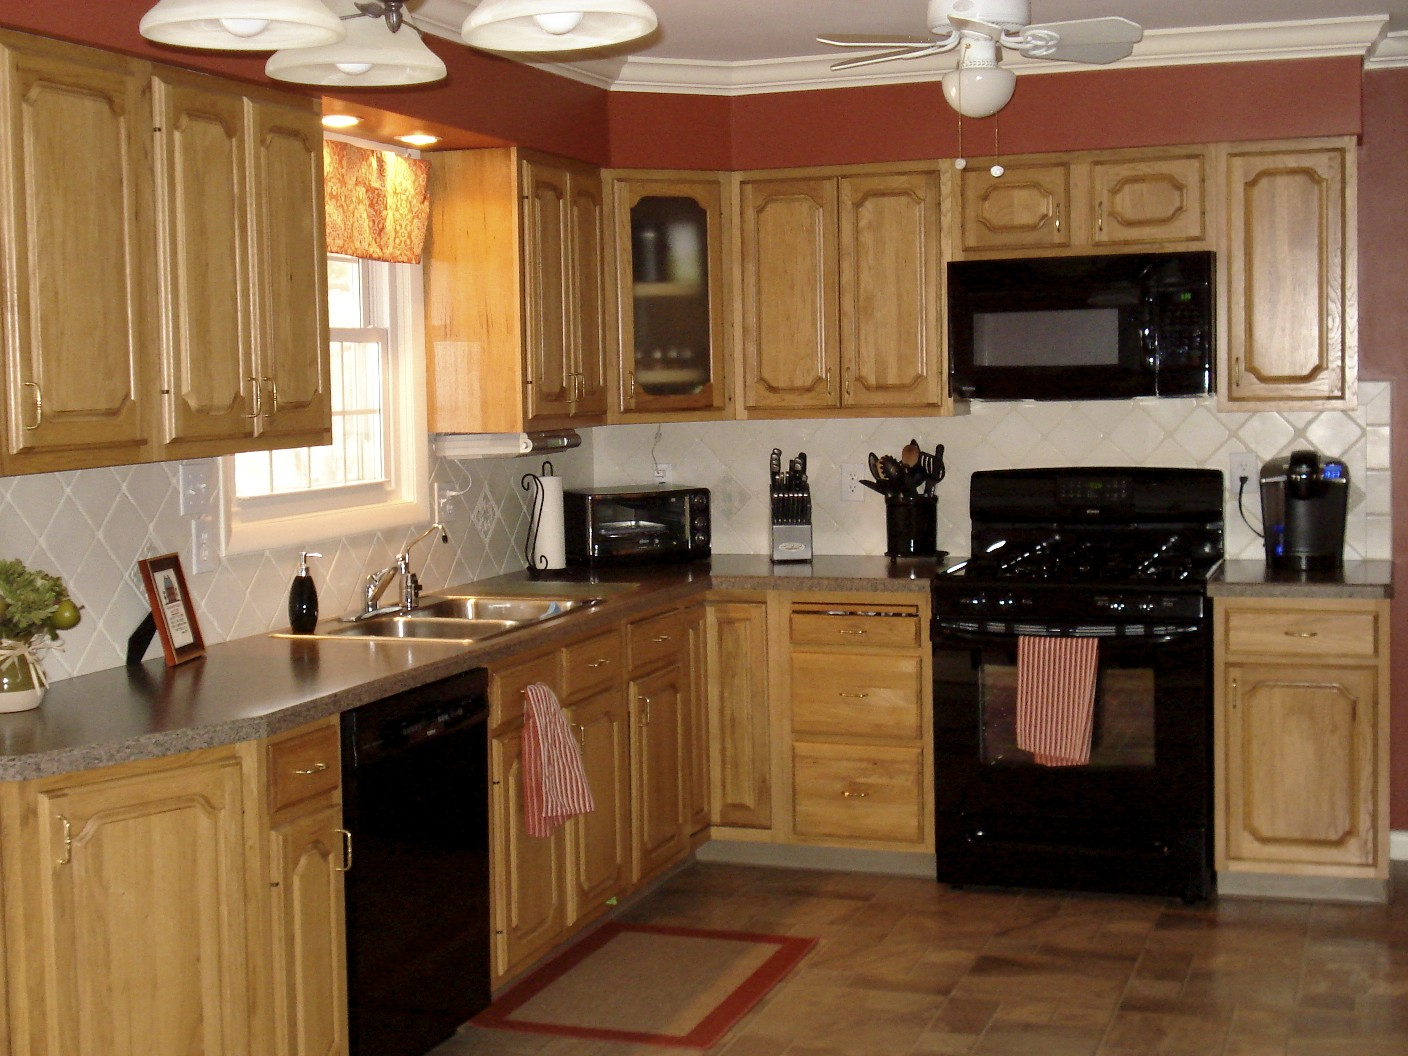 The Matching Black Appliances Made A Huge Impact In My Opinion Light Kitchen Cabinets With